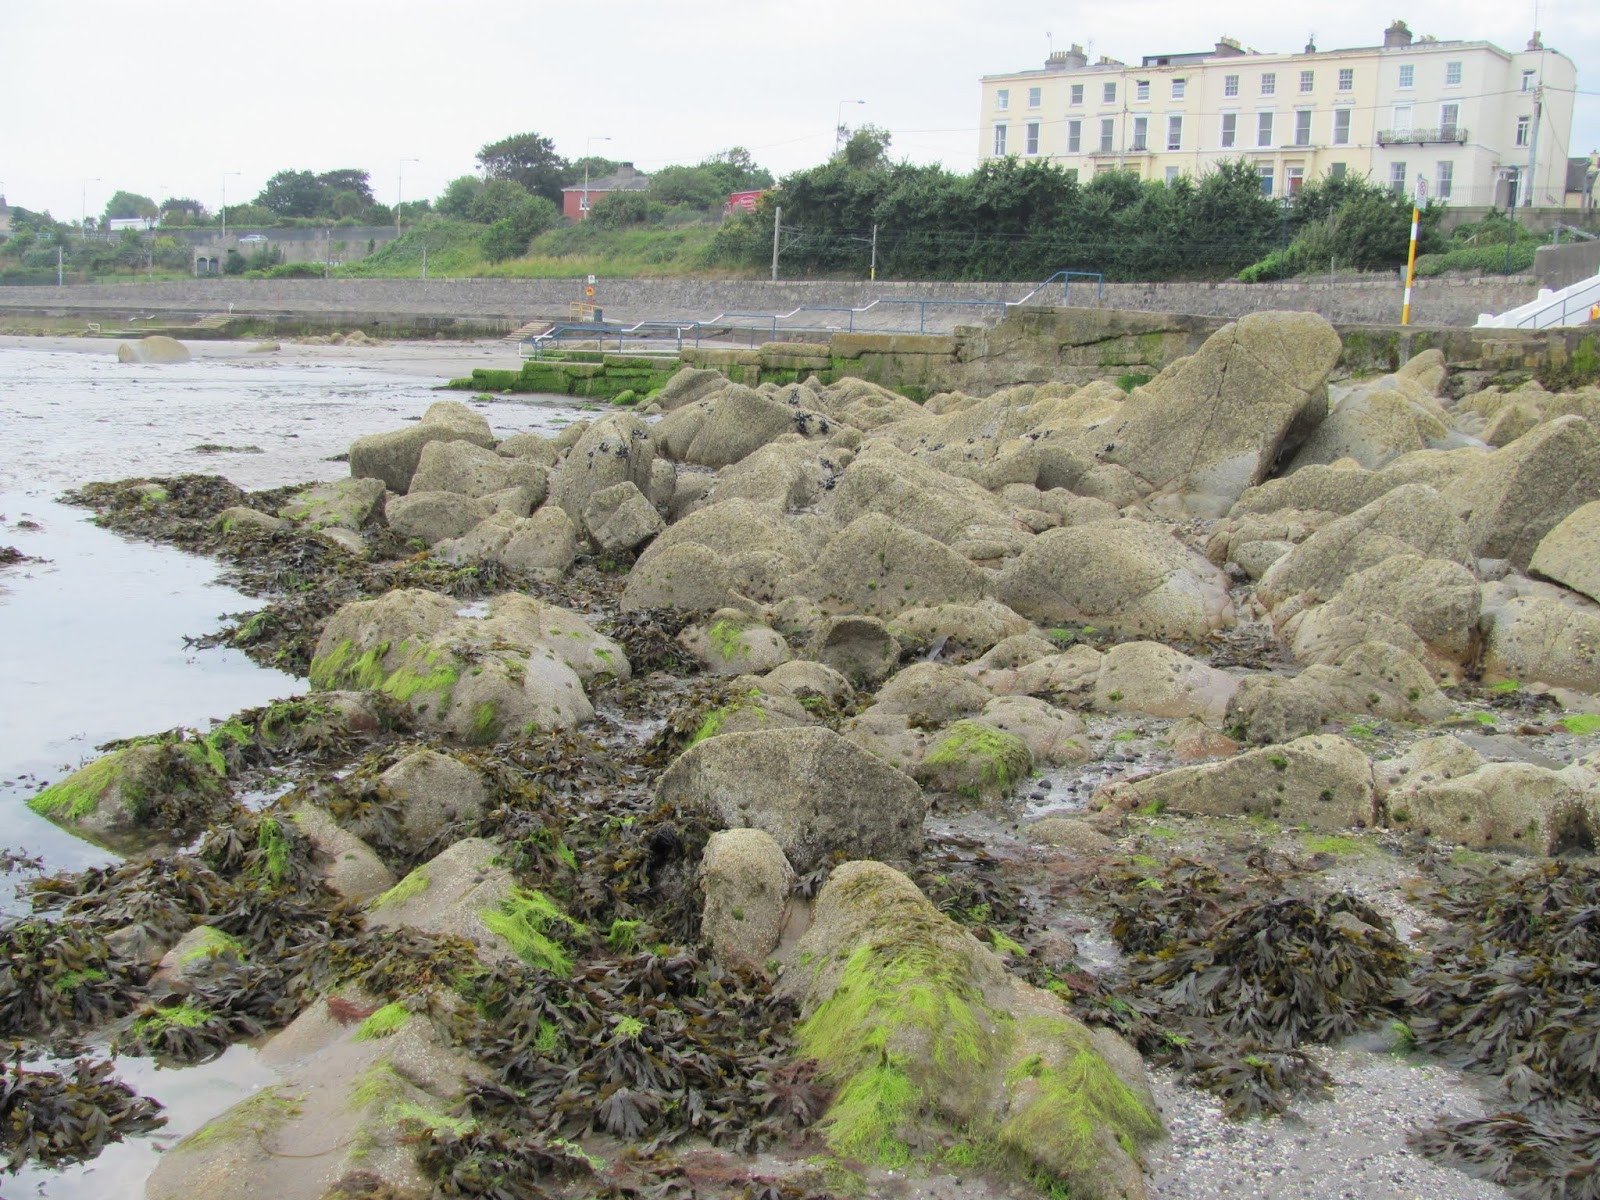 Rocks and seaweed are exposed at low tide at Seapoint Beach, Dublin, Ireland